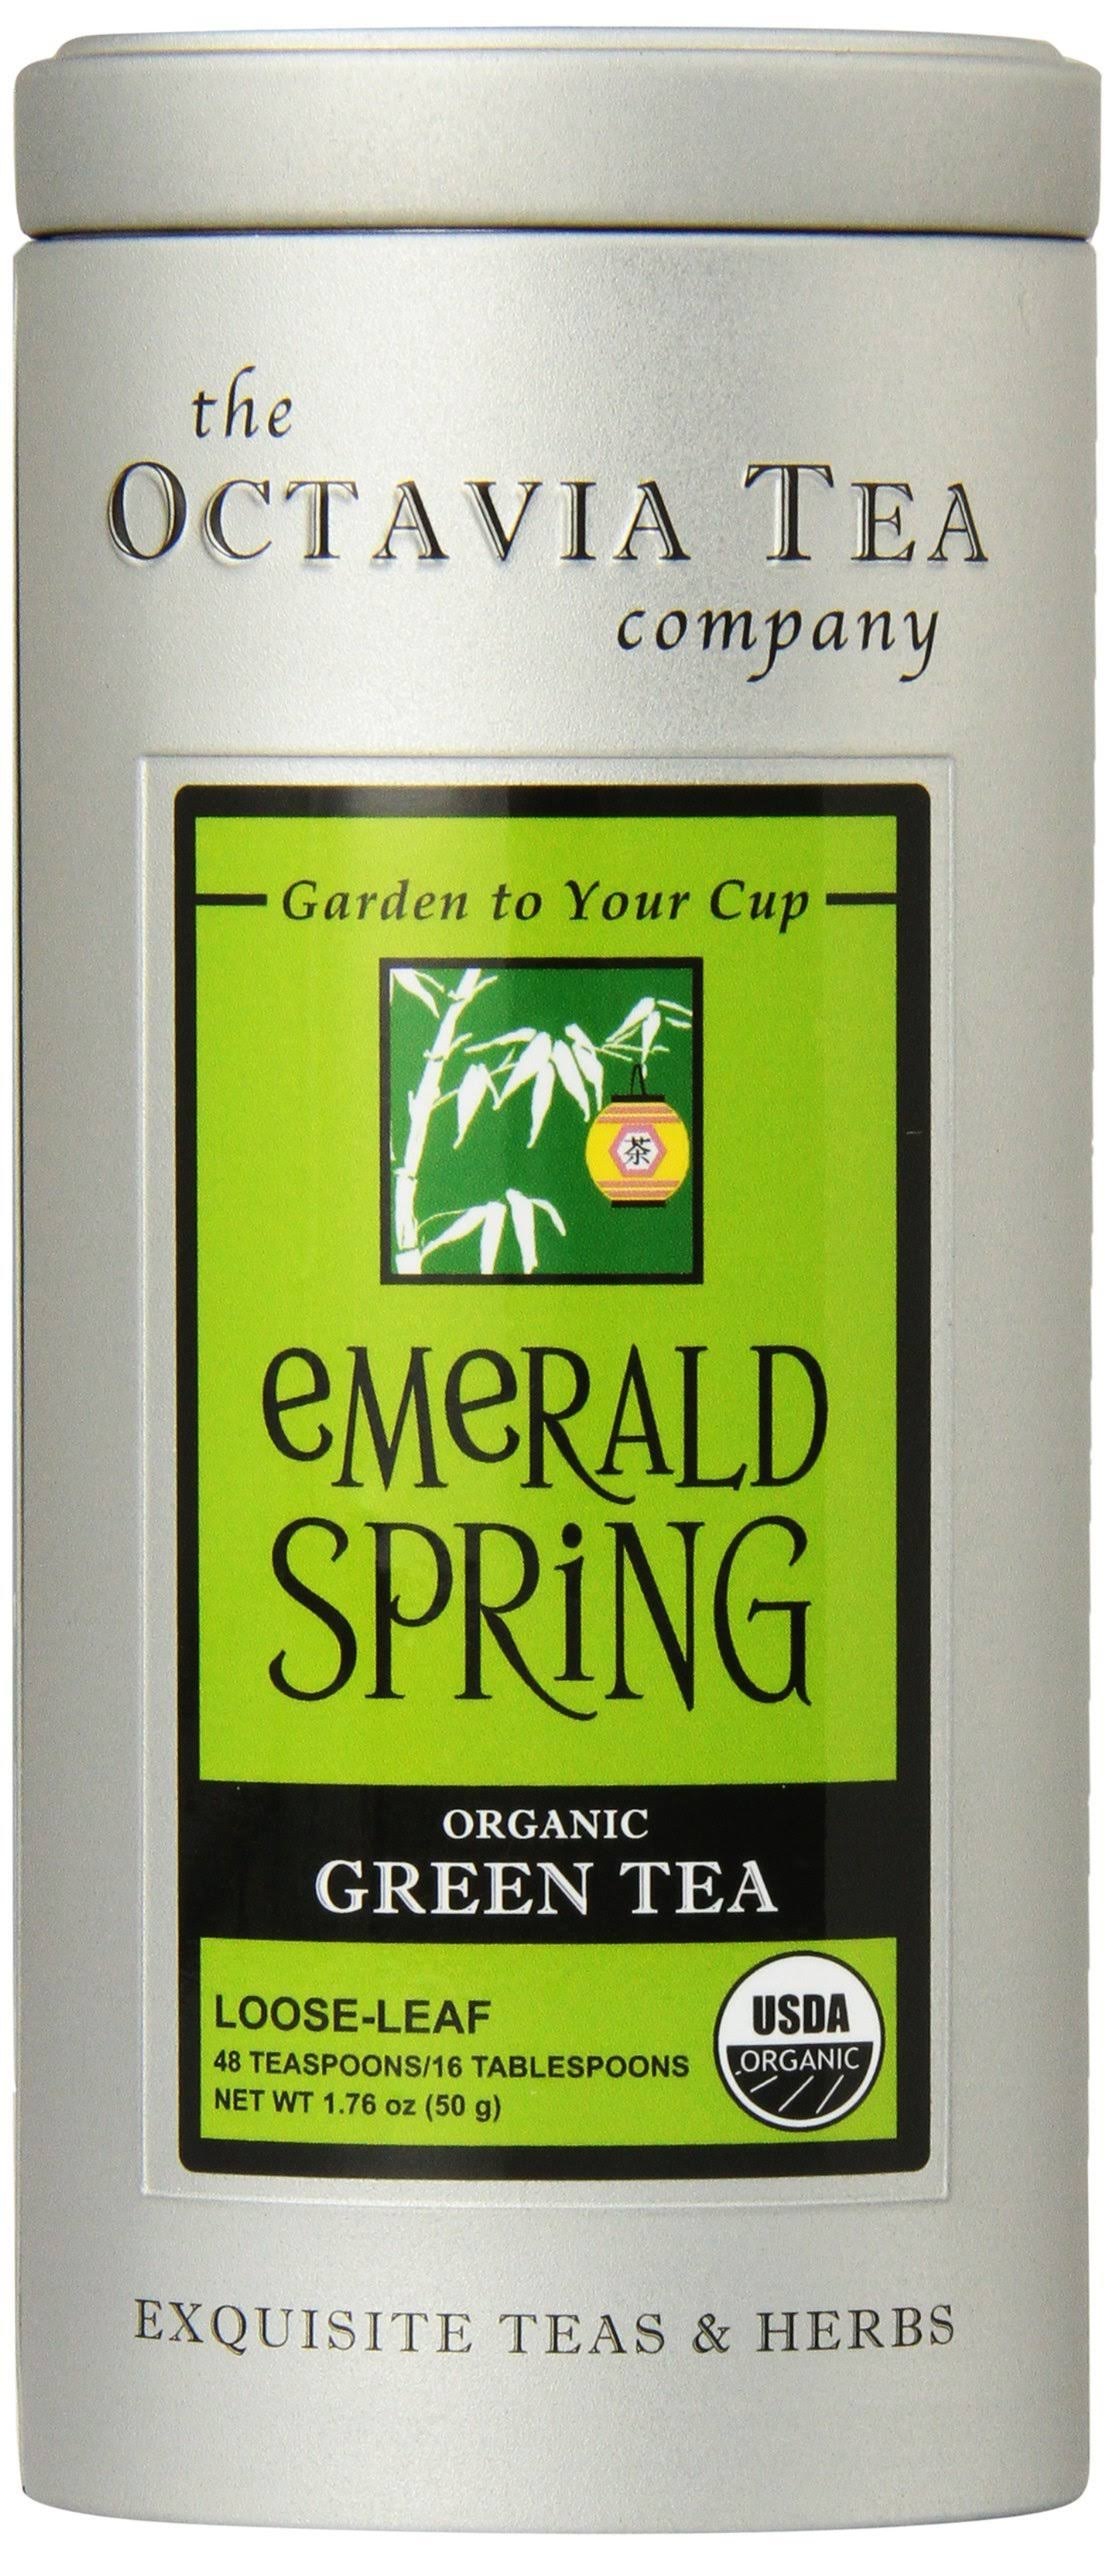 Octavia Tea Emerald Spring (Organic Green Tea) Loose